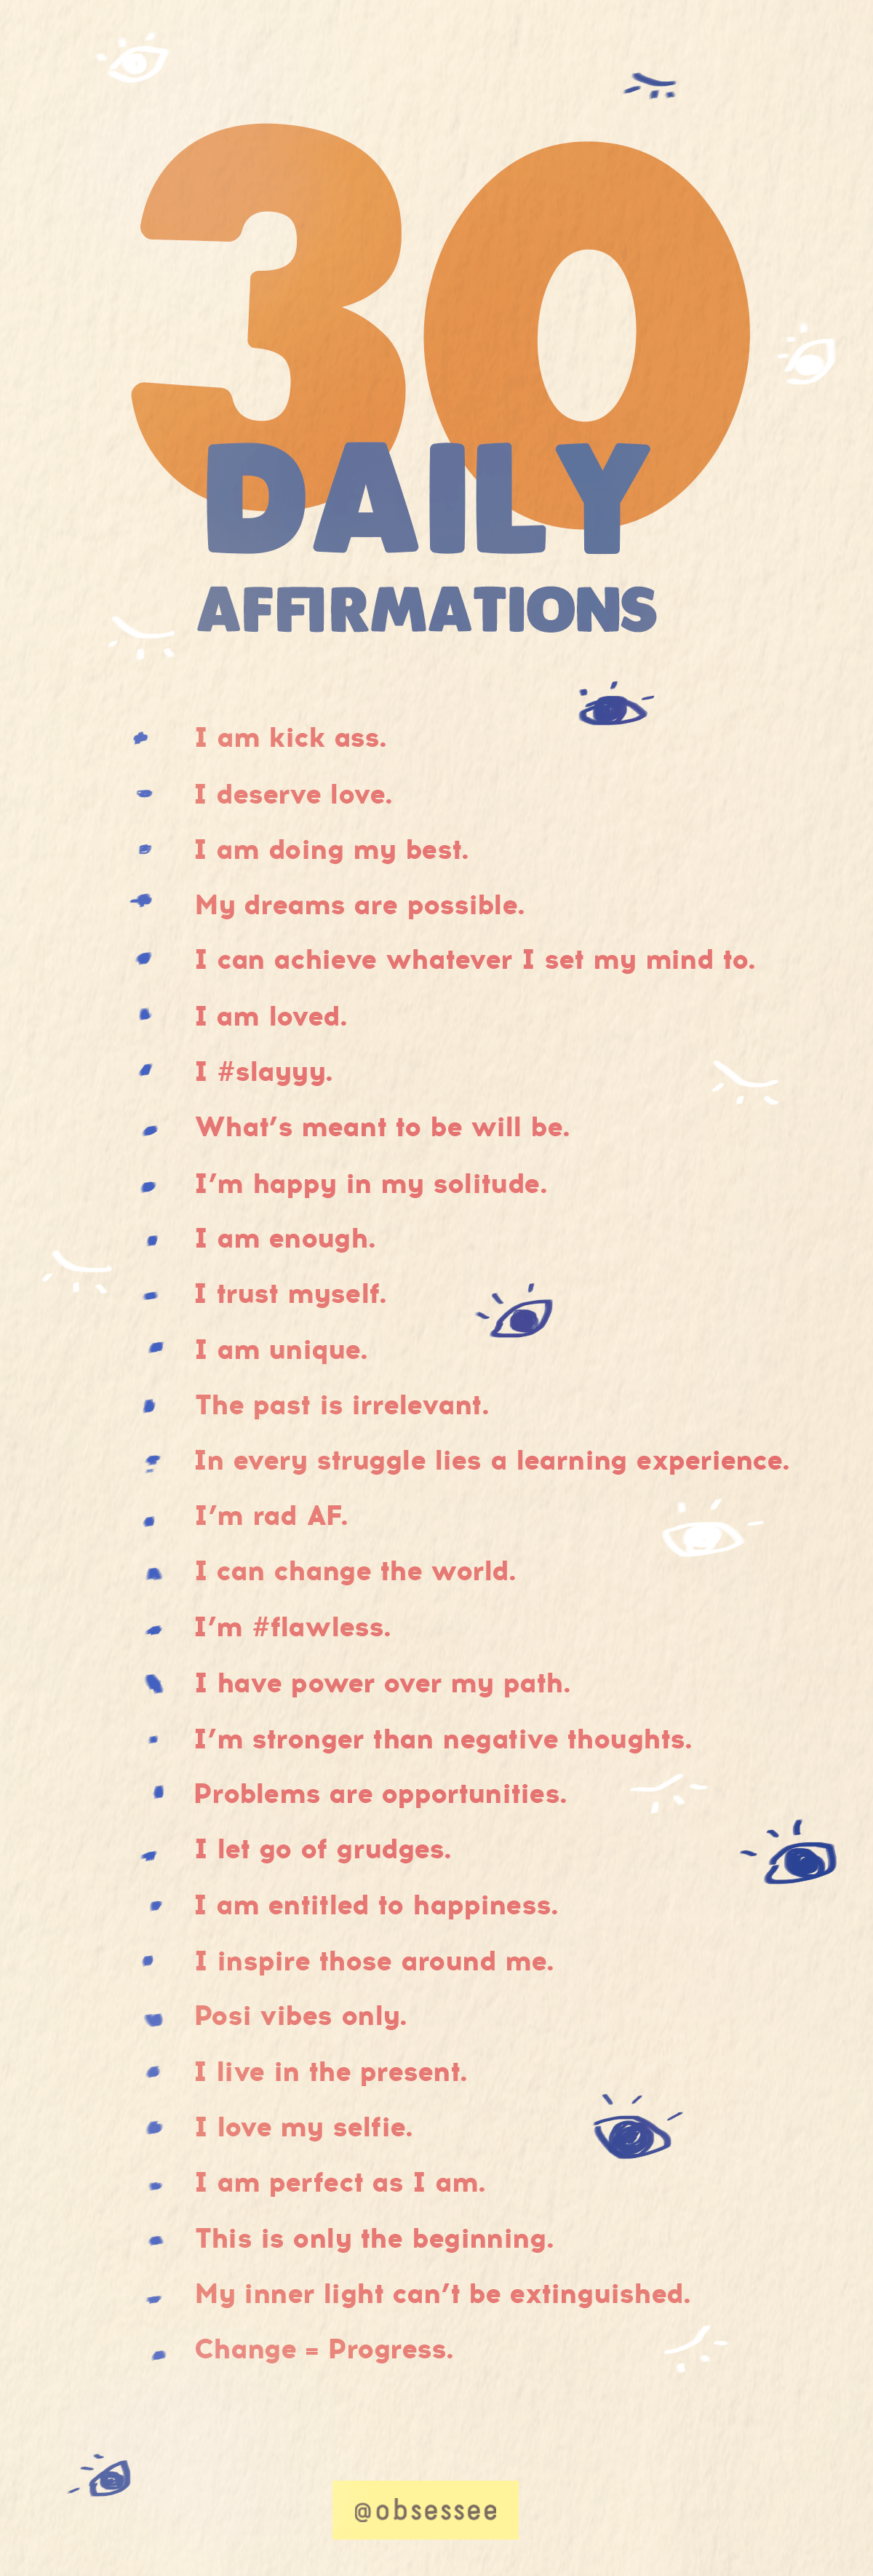 Save These 30 Daily Affirmations For Positive Words To